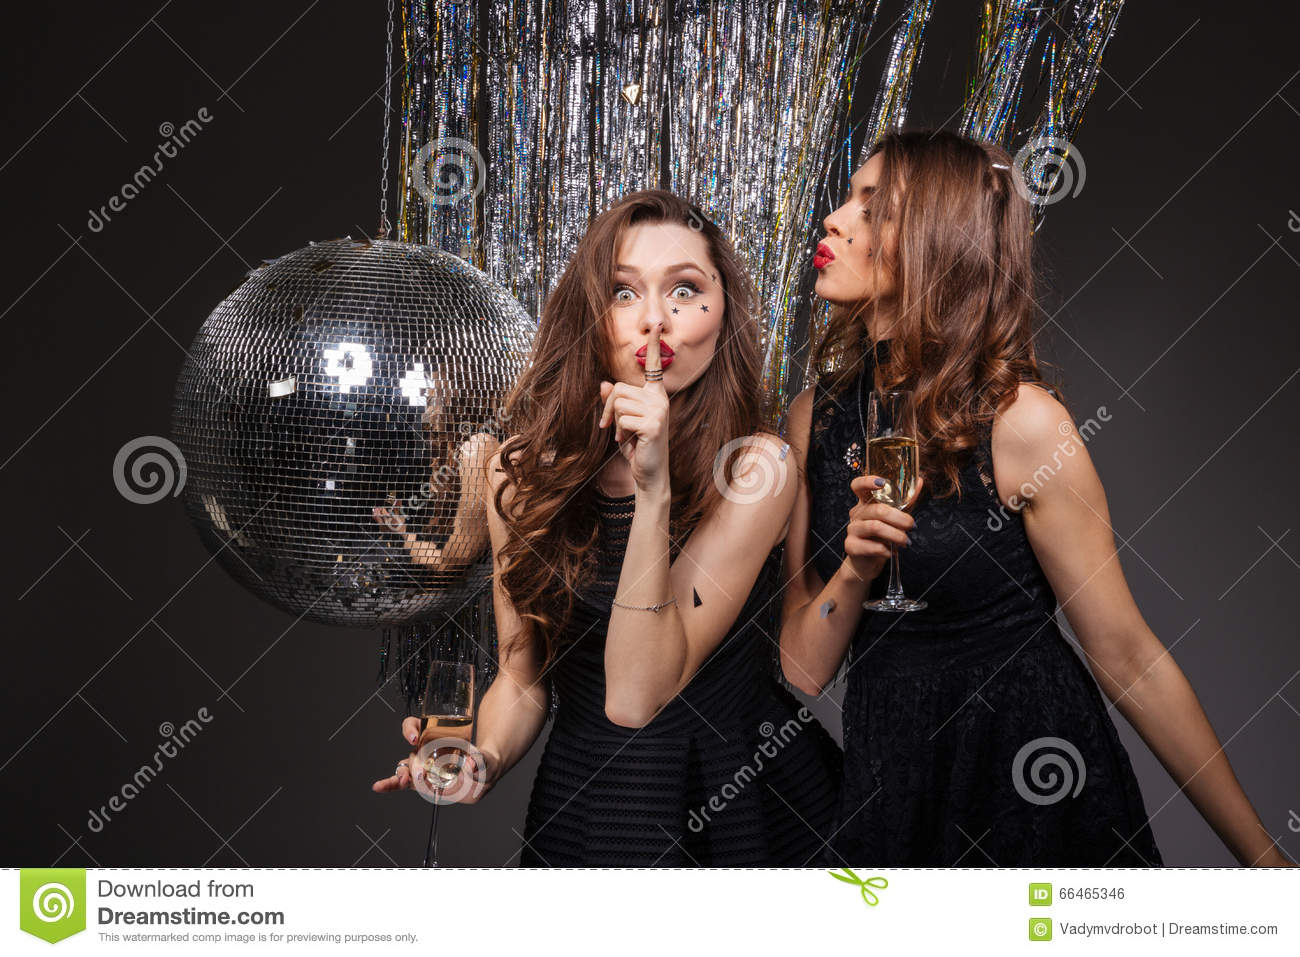 Two amusing women showing silence gesture and drinking champagne